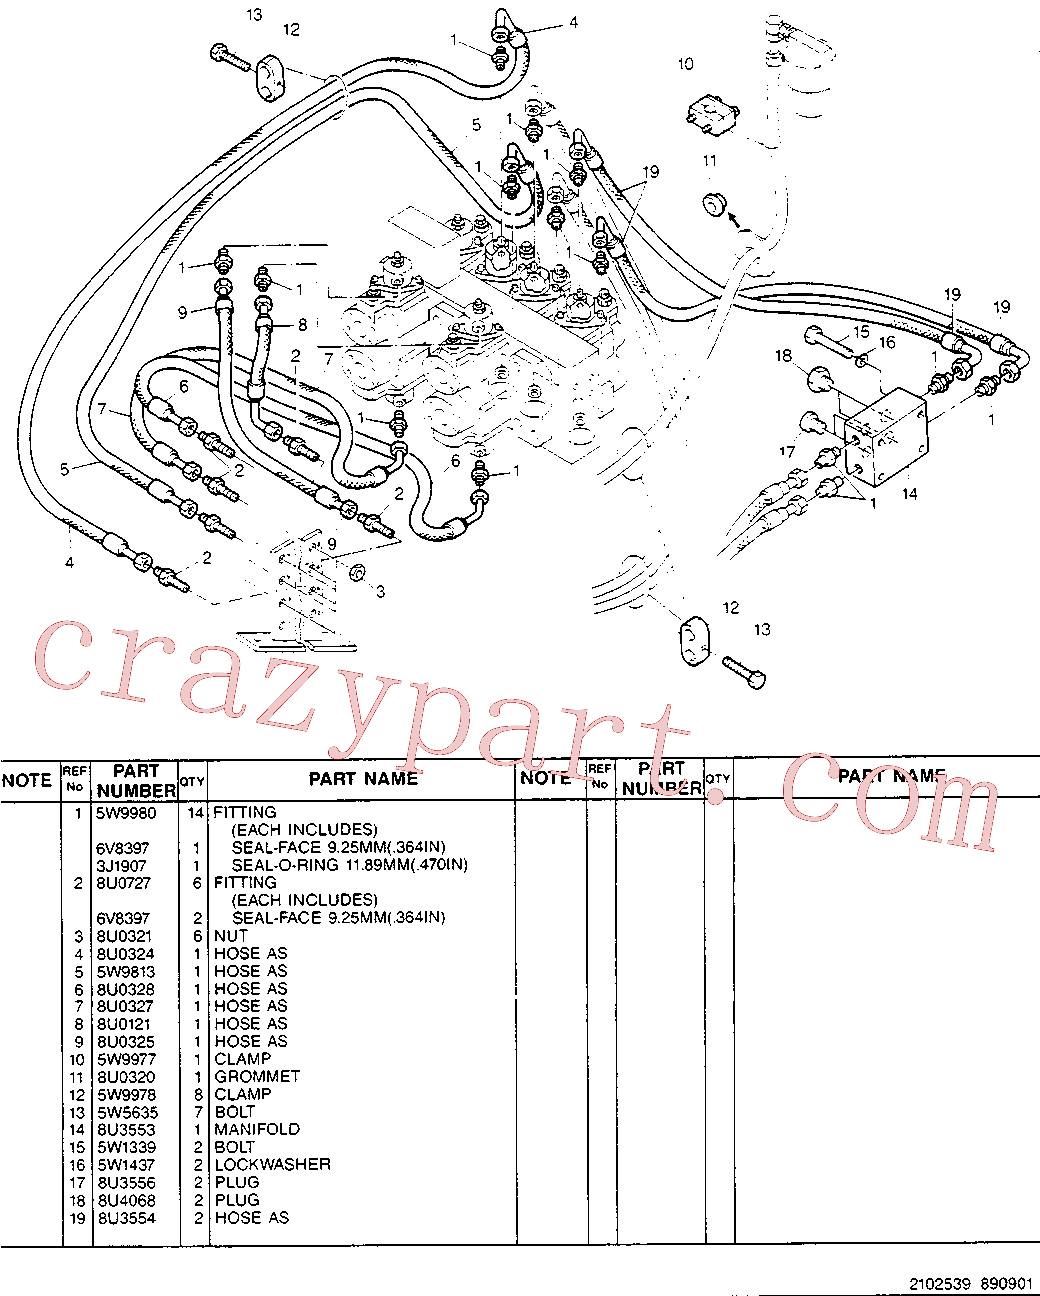 CAT 8U-0302 for 214B FT Excavator(EXC) hydraulic system 5W-9817 Assembly